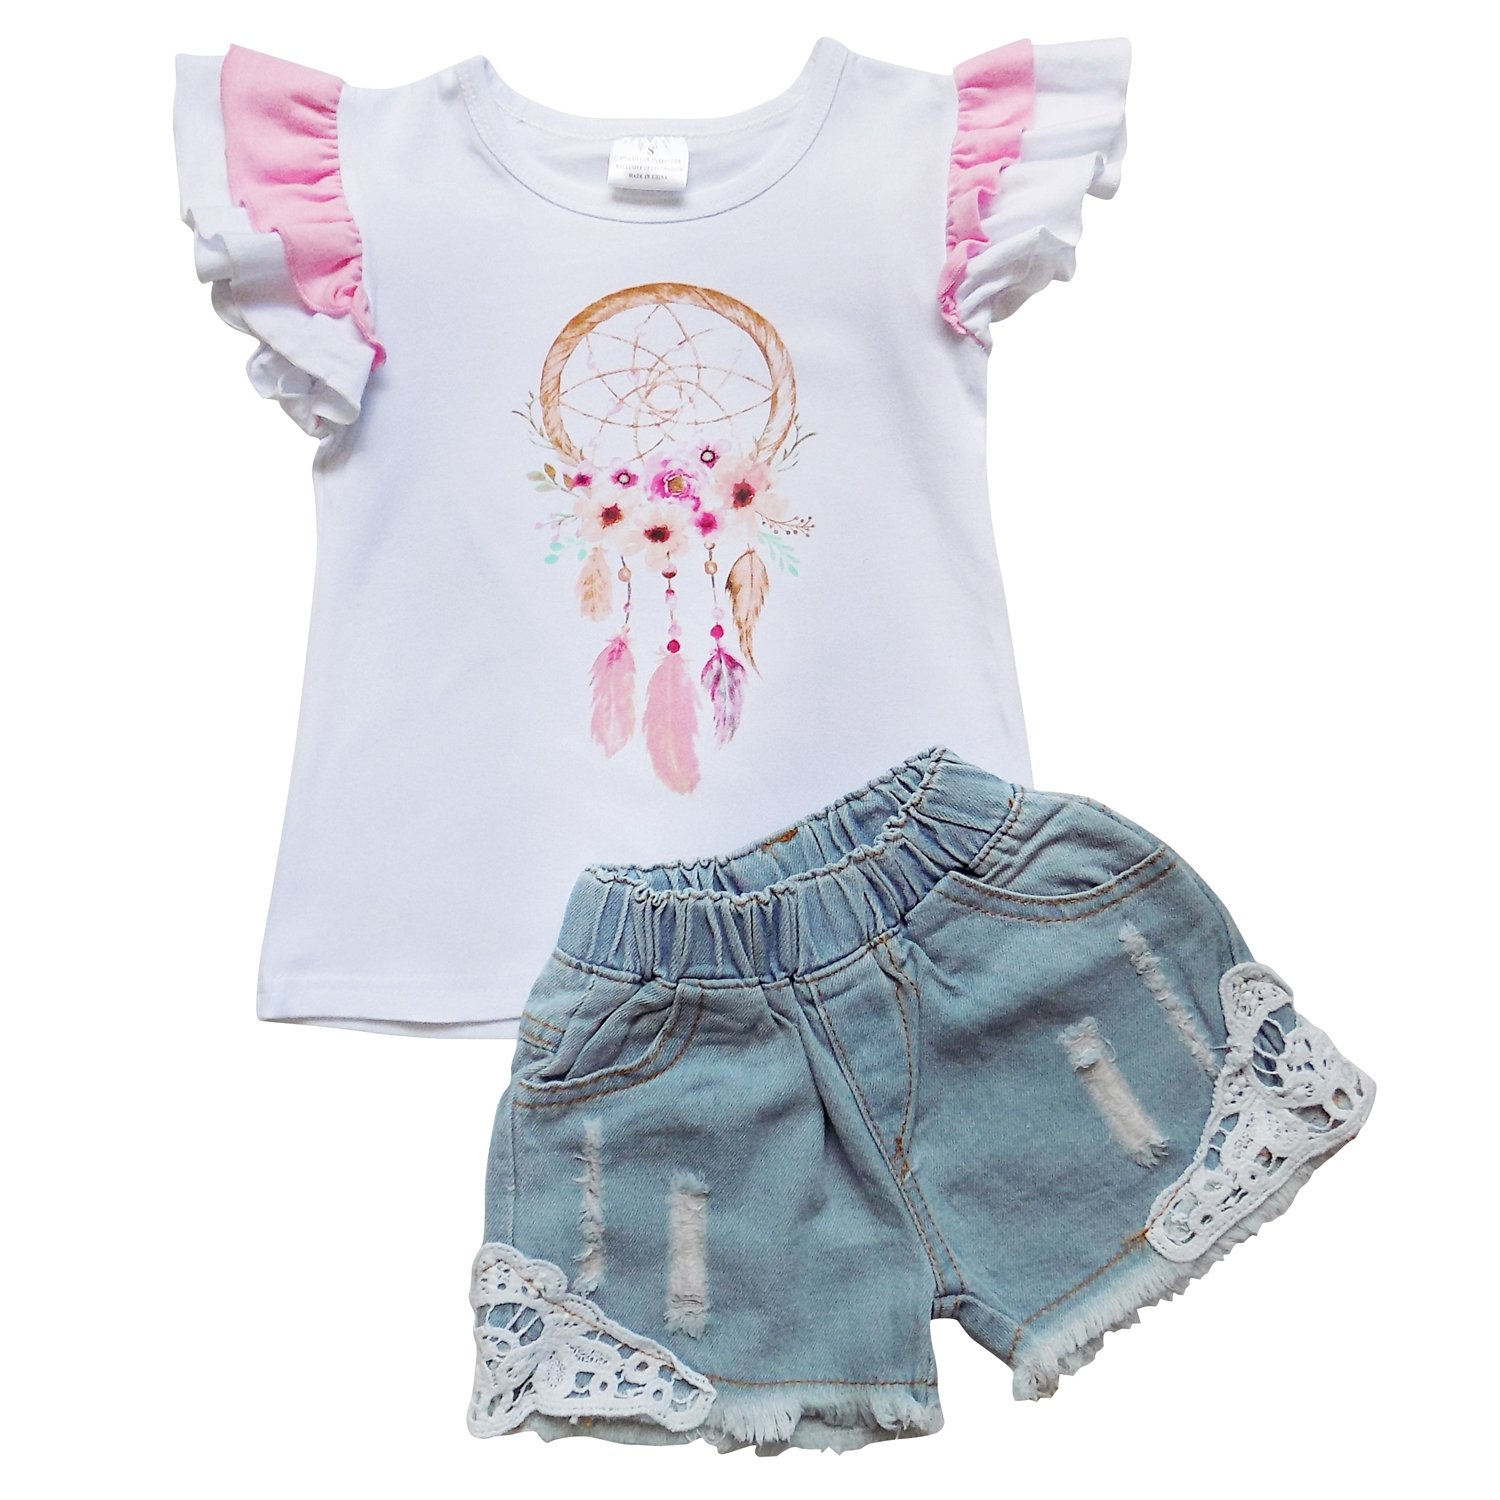 So Sydney Girls Toddler Deluxe Novelty Ruffle Summer Boutique Shorts Outfit (S (3T), Dreamcatcher Denim Lace)